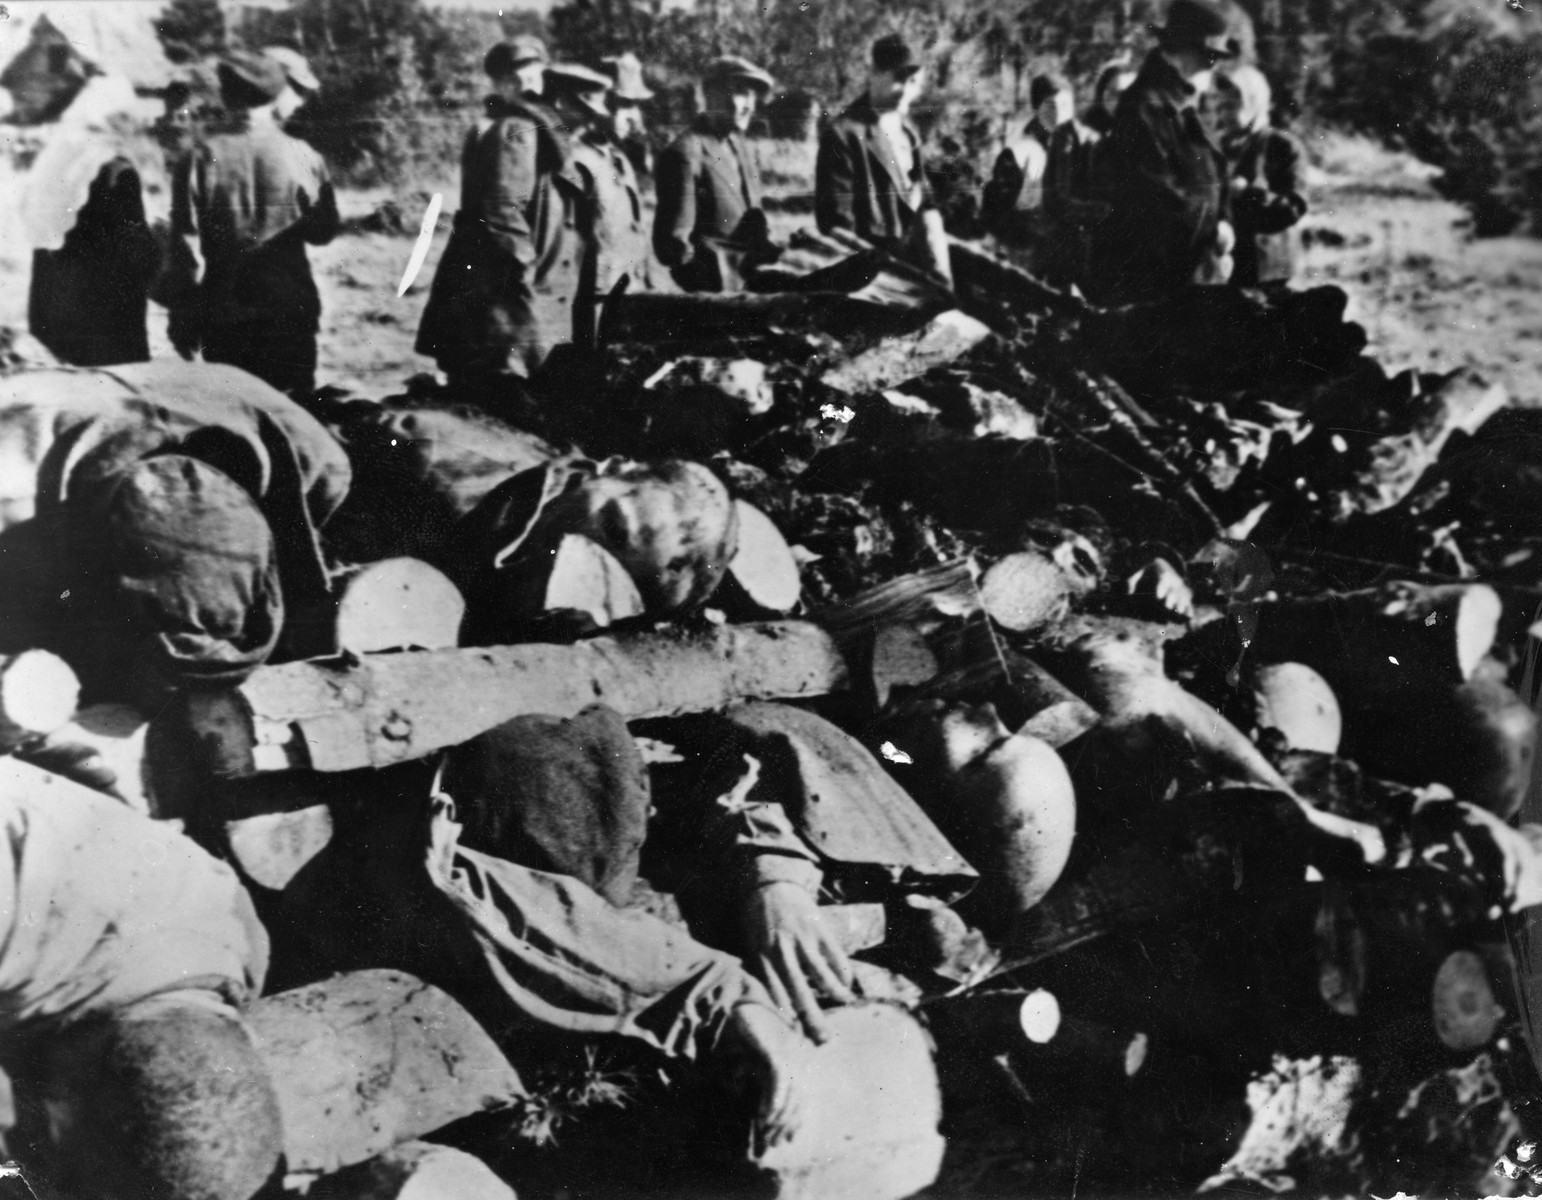 Members of a Soviet war crimes investigation commission view the bodies of slain prisoners which have been stacked for burning.